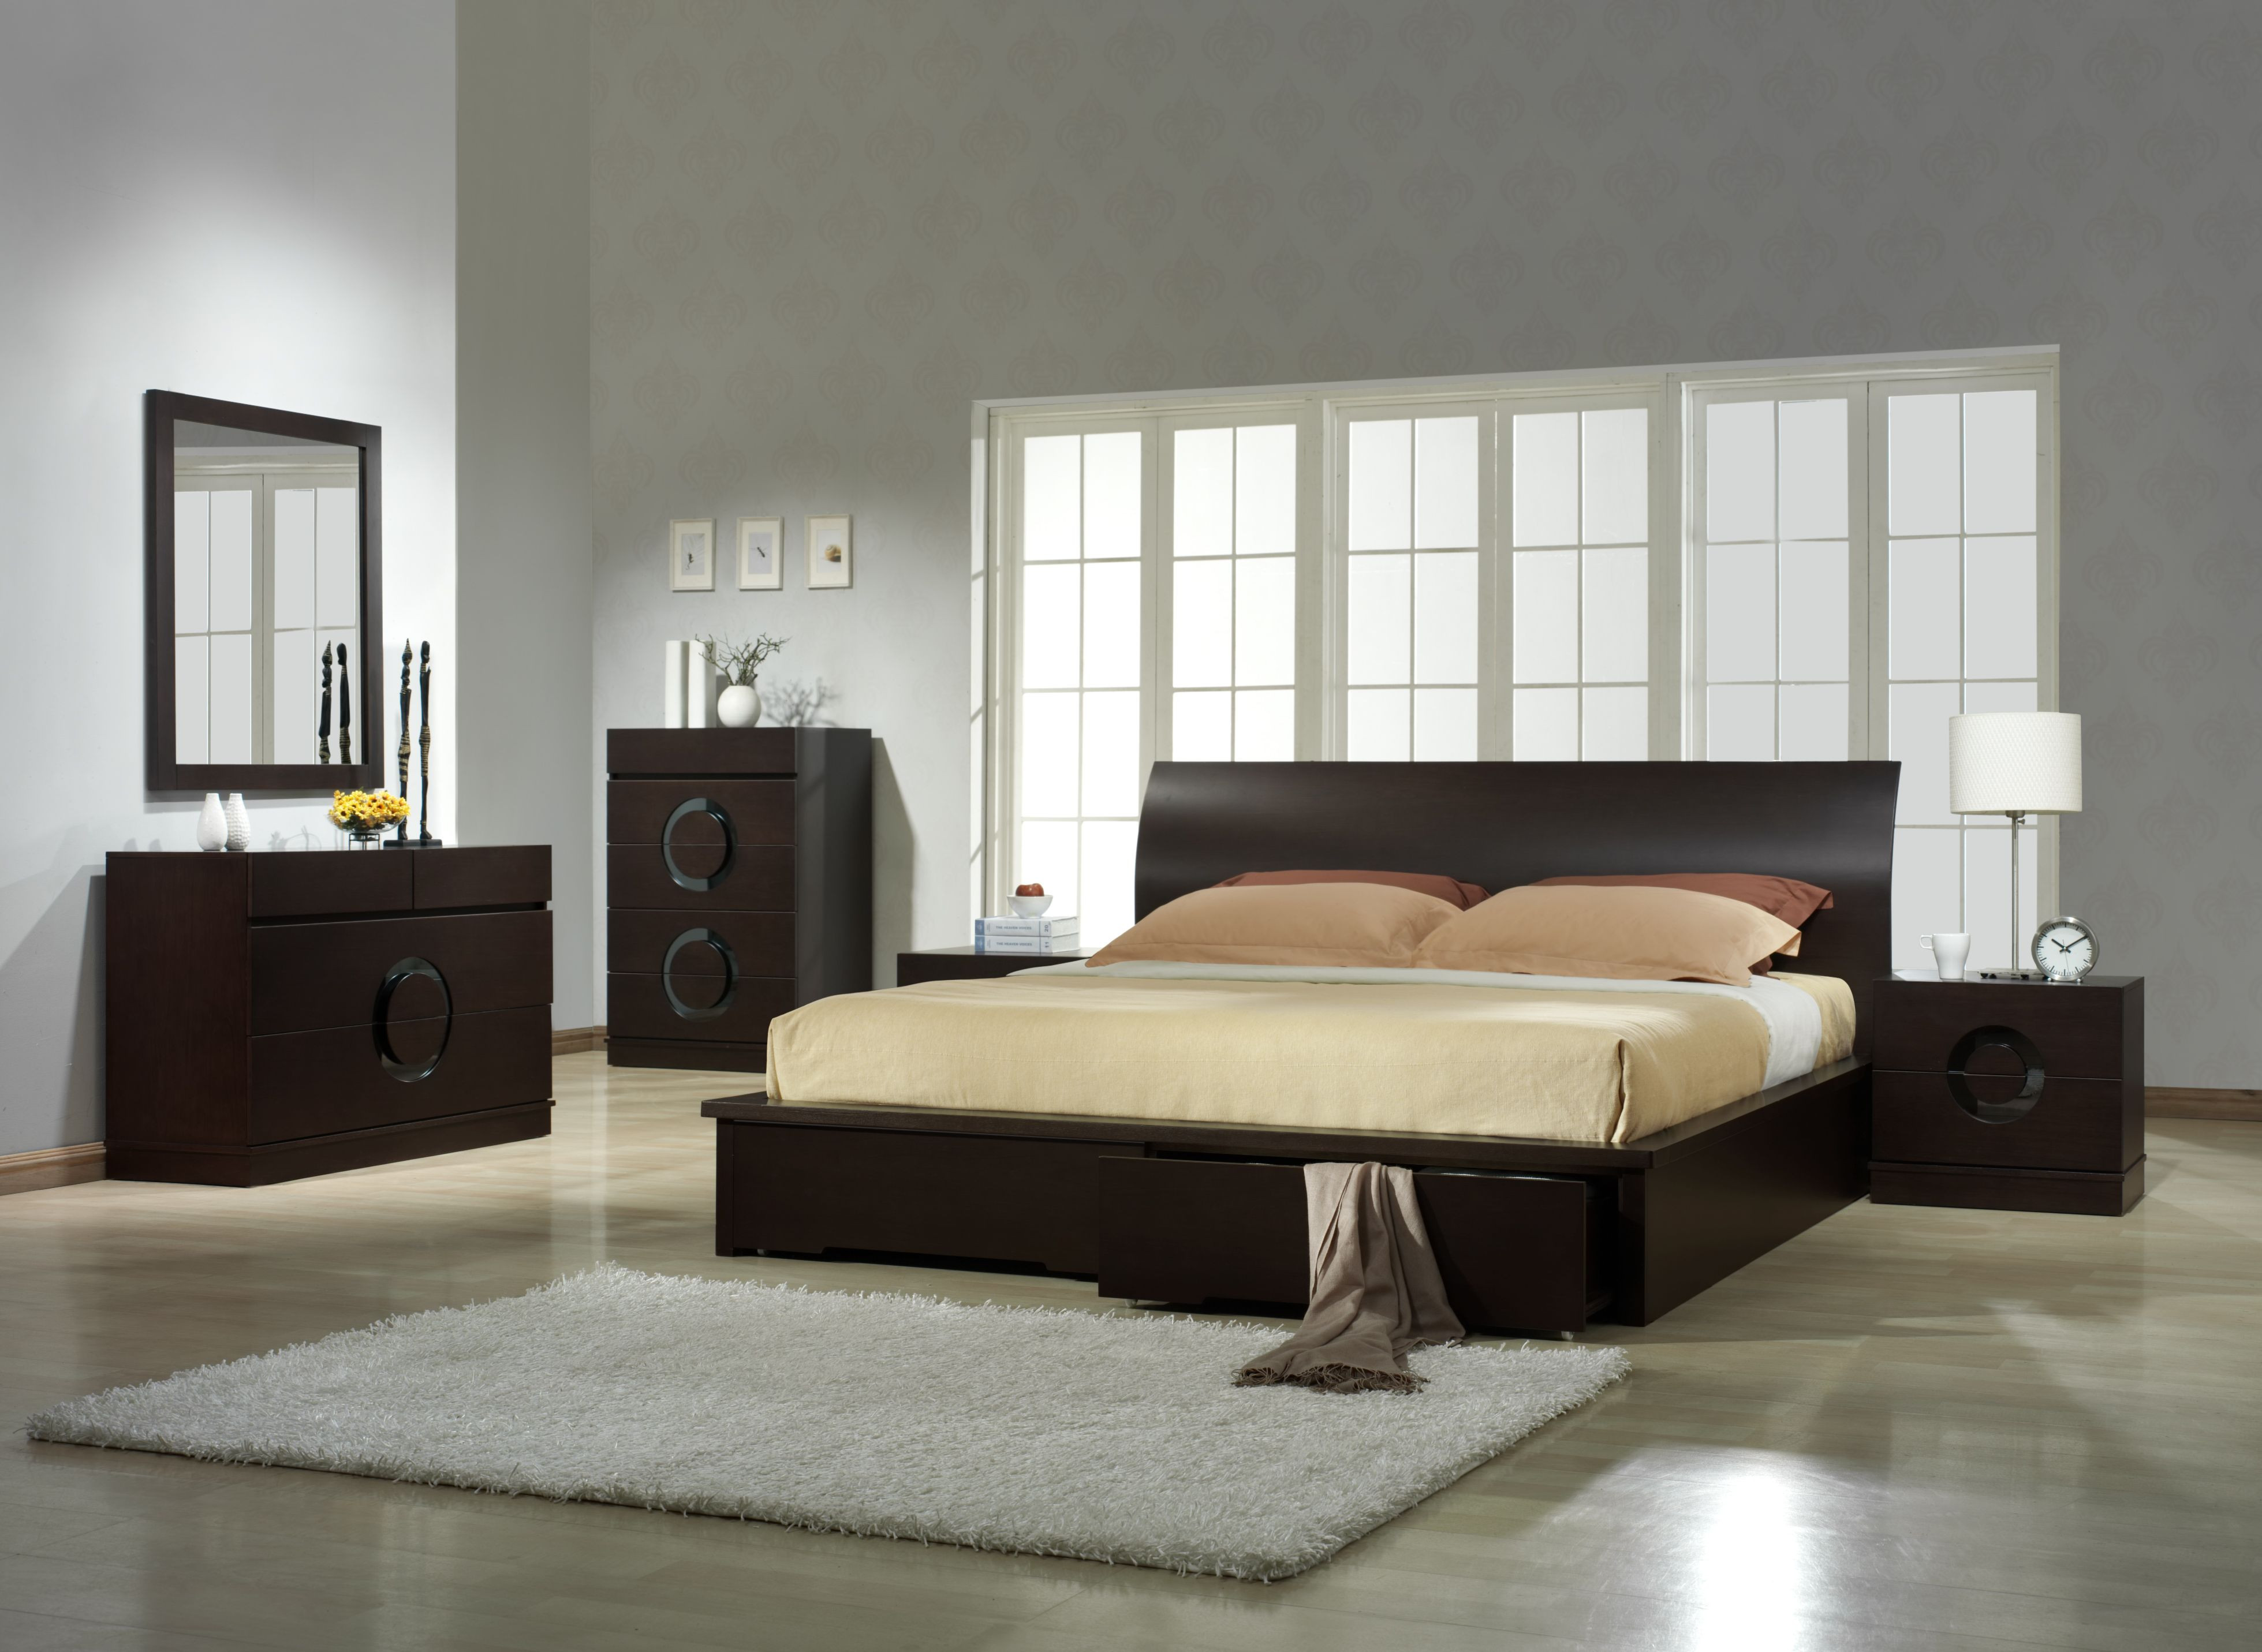 Stylish Furniplanet Cheap Traditional Bedroom Sets On Sale Online     Stylish Furniplanet Cheap Traditional Bedroom Sets On Sale Online Also Full